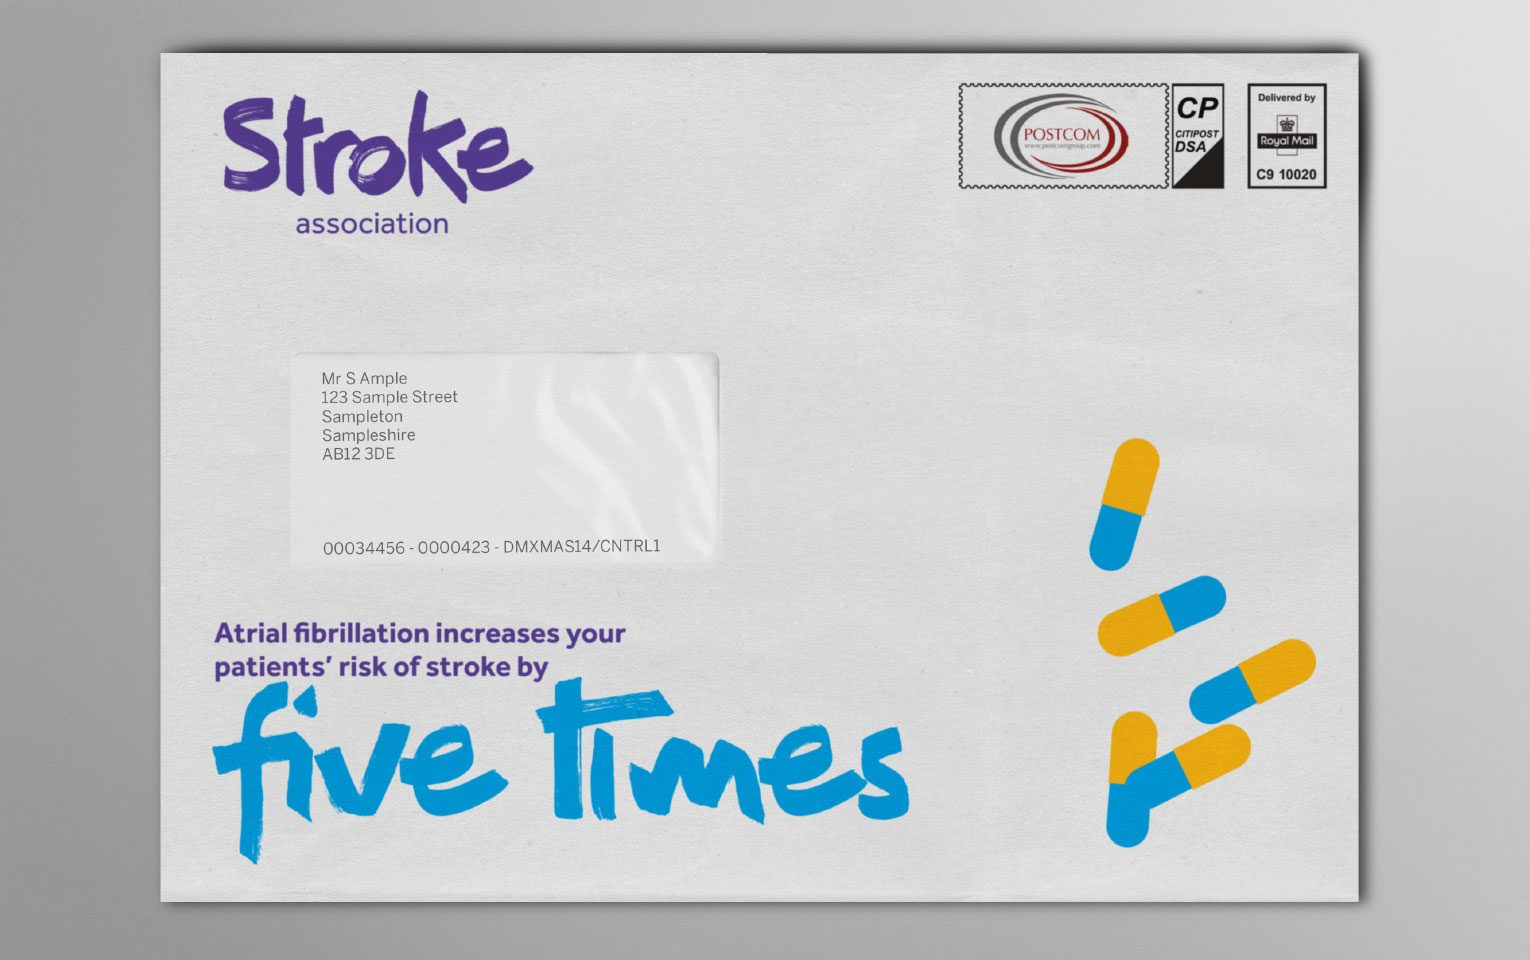 Mailing pack branded envelope for the Stroke Association.